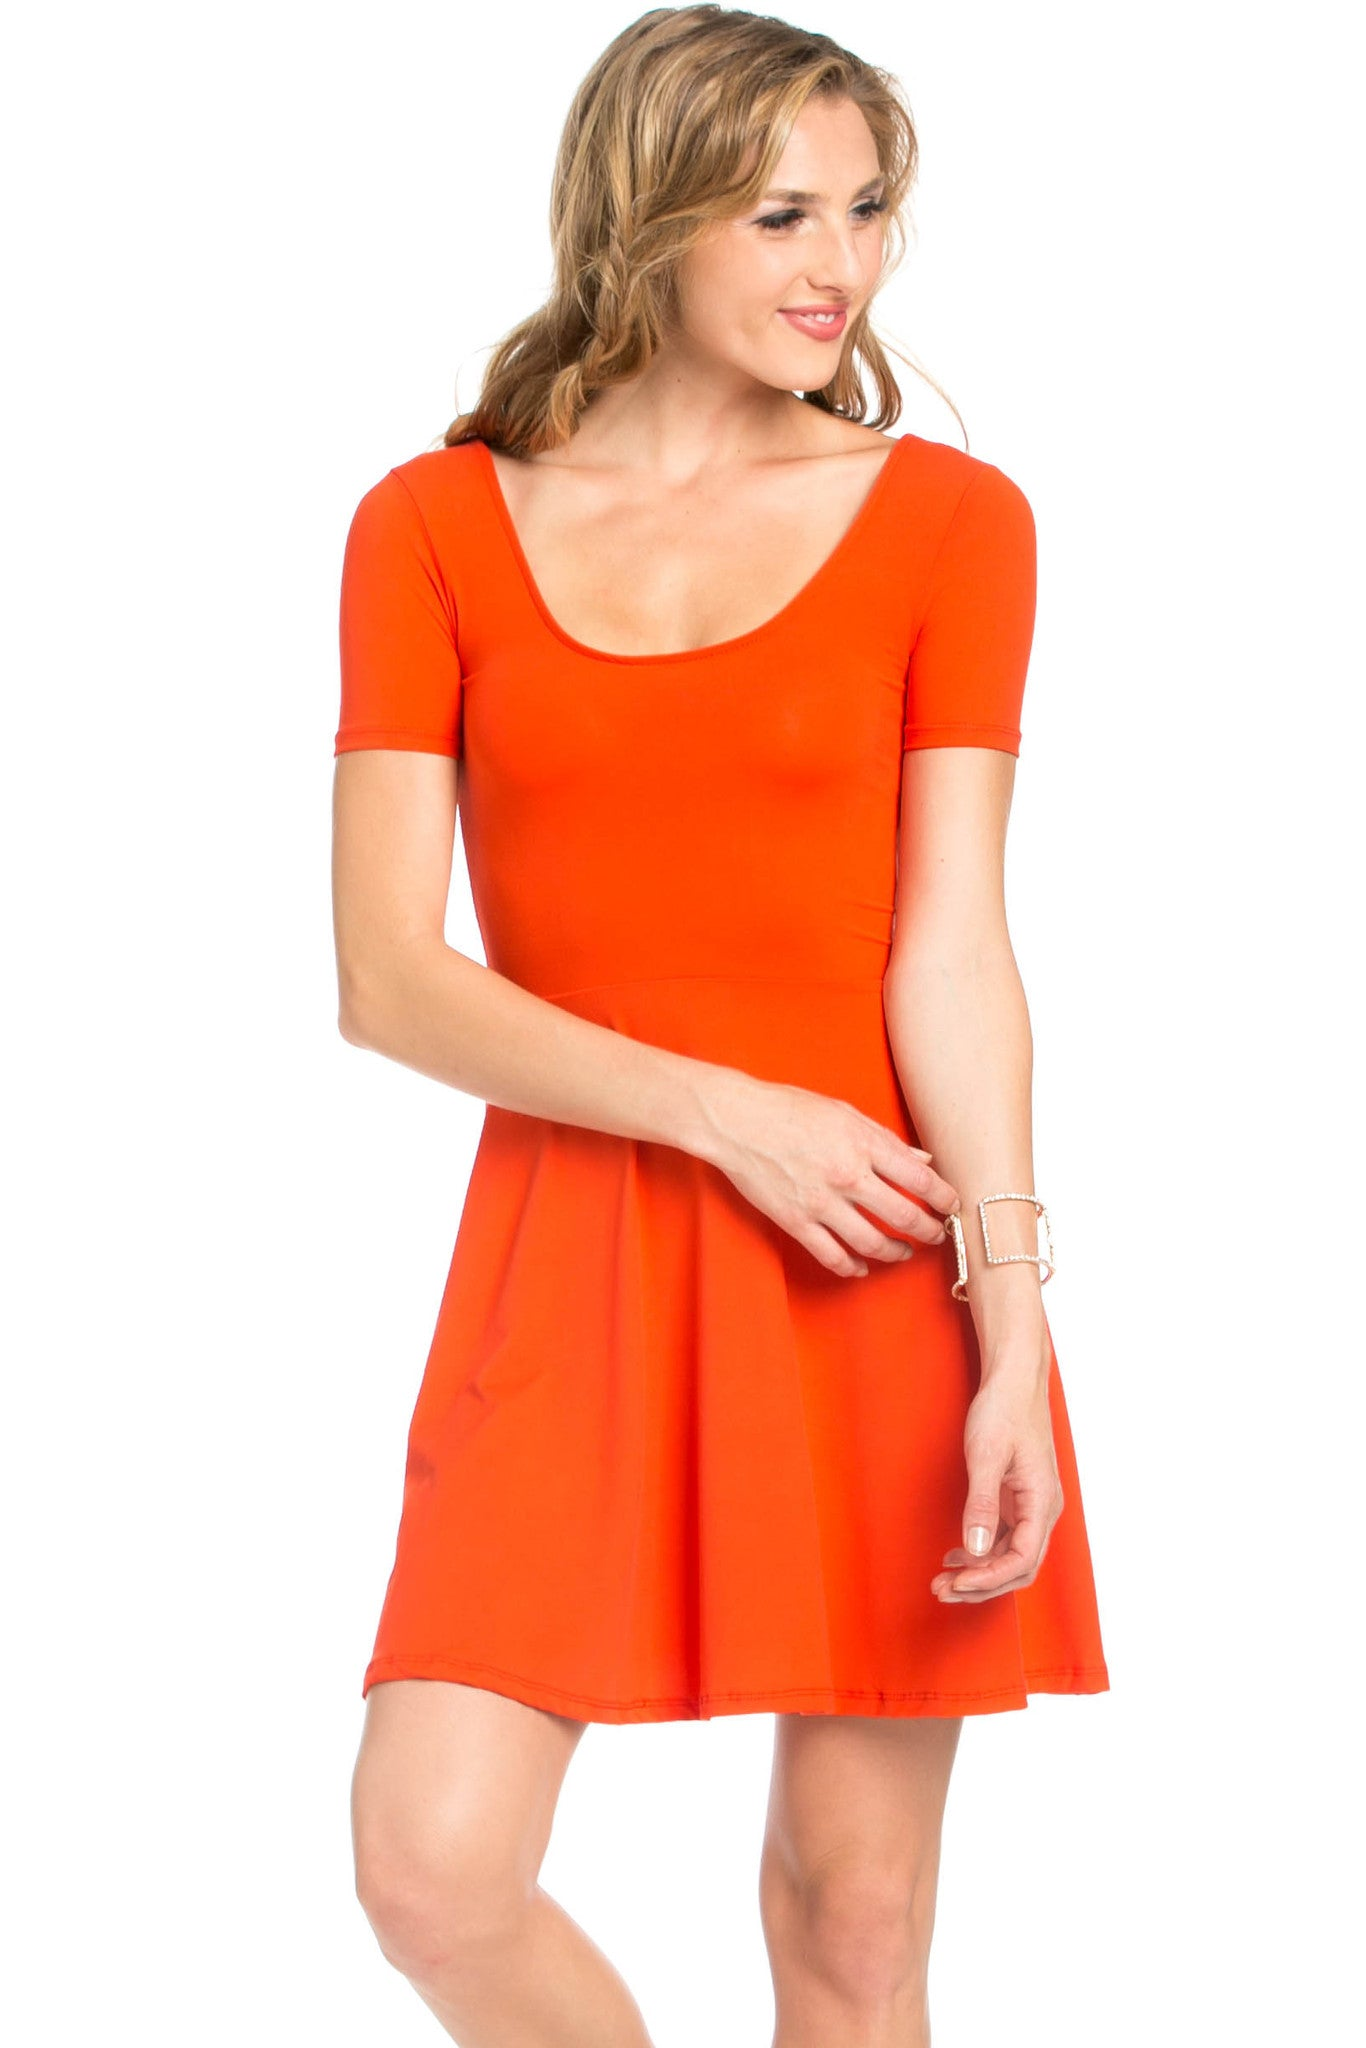 Micro Suede Tomato Mini Dress - Dresses - My Yuccie - 4